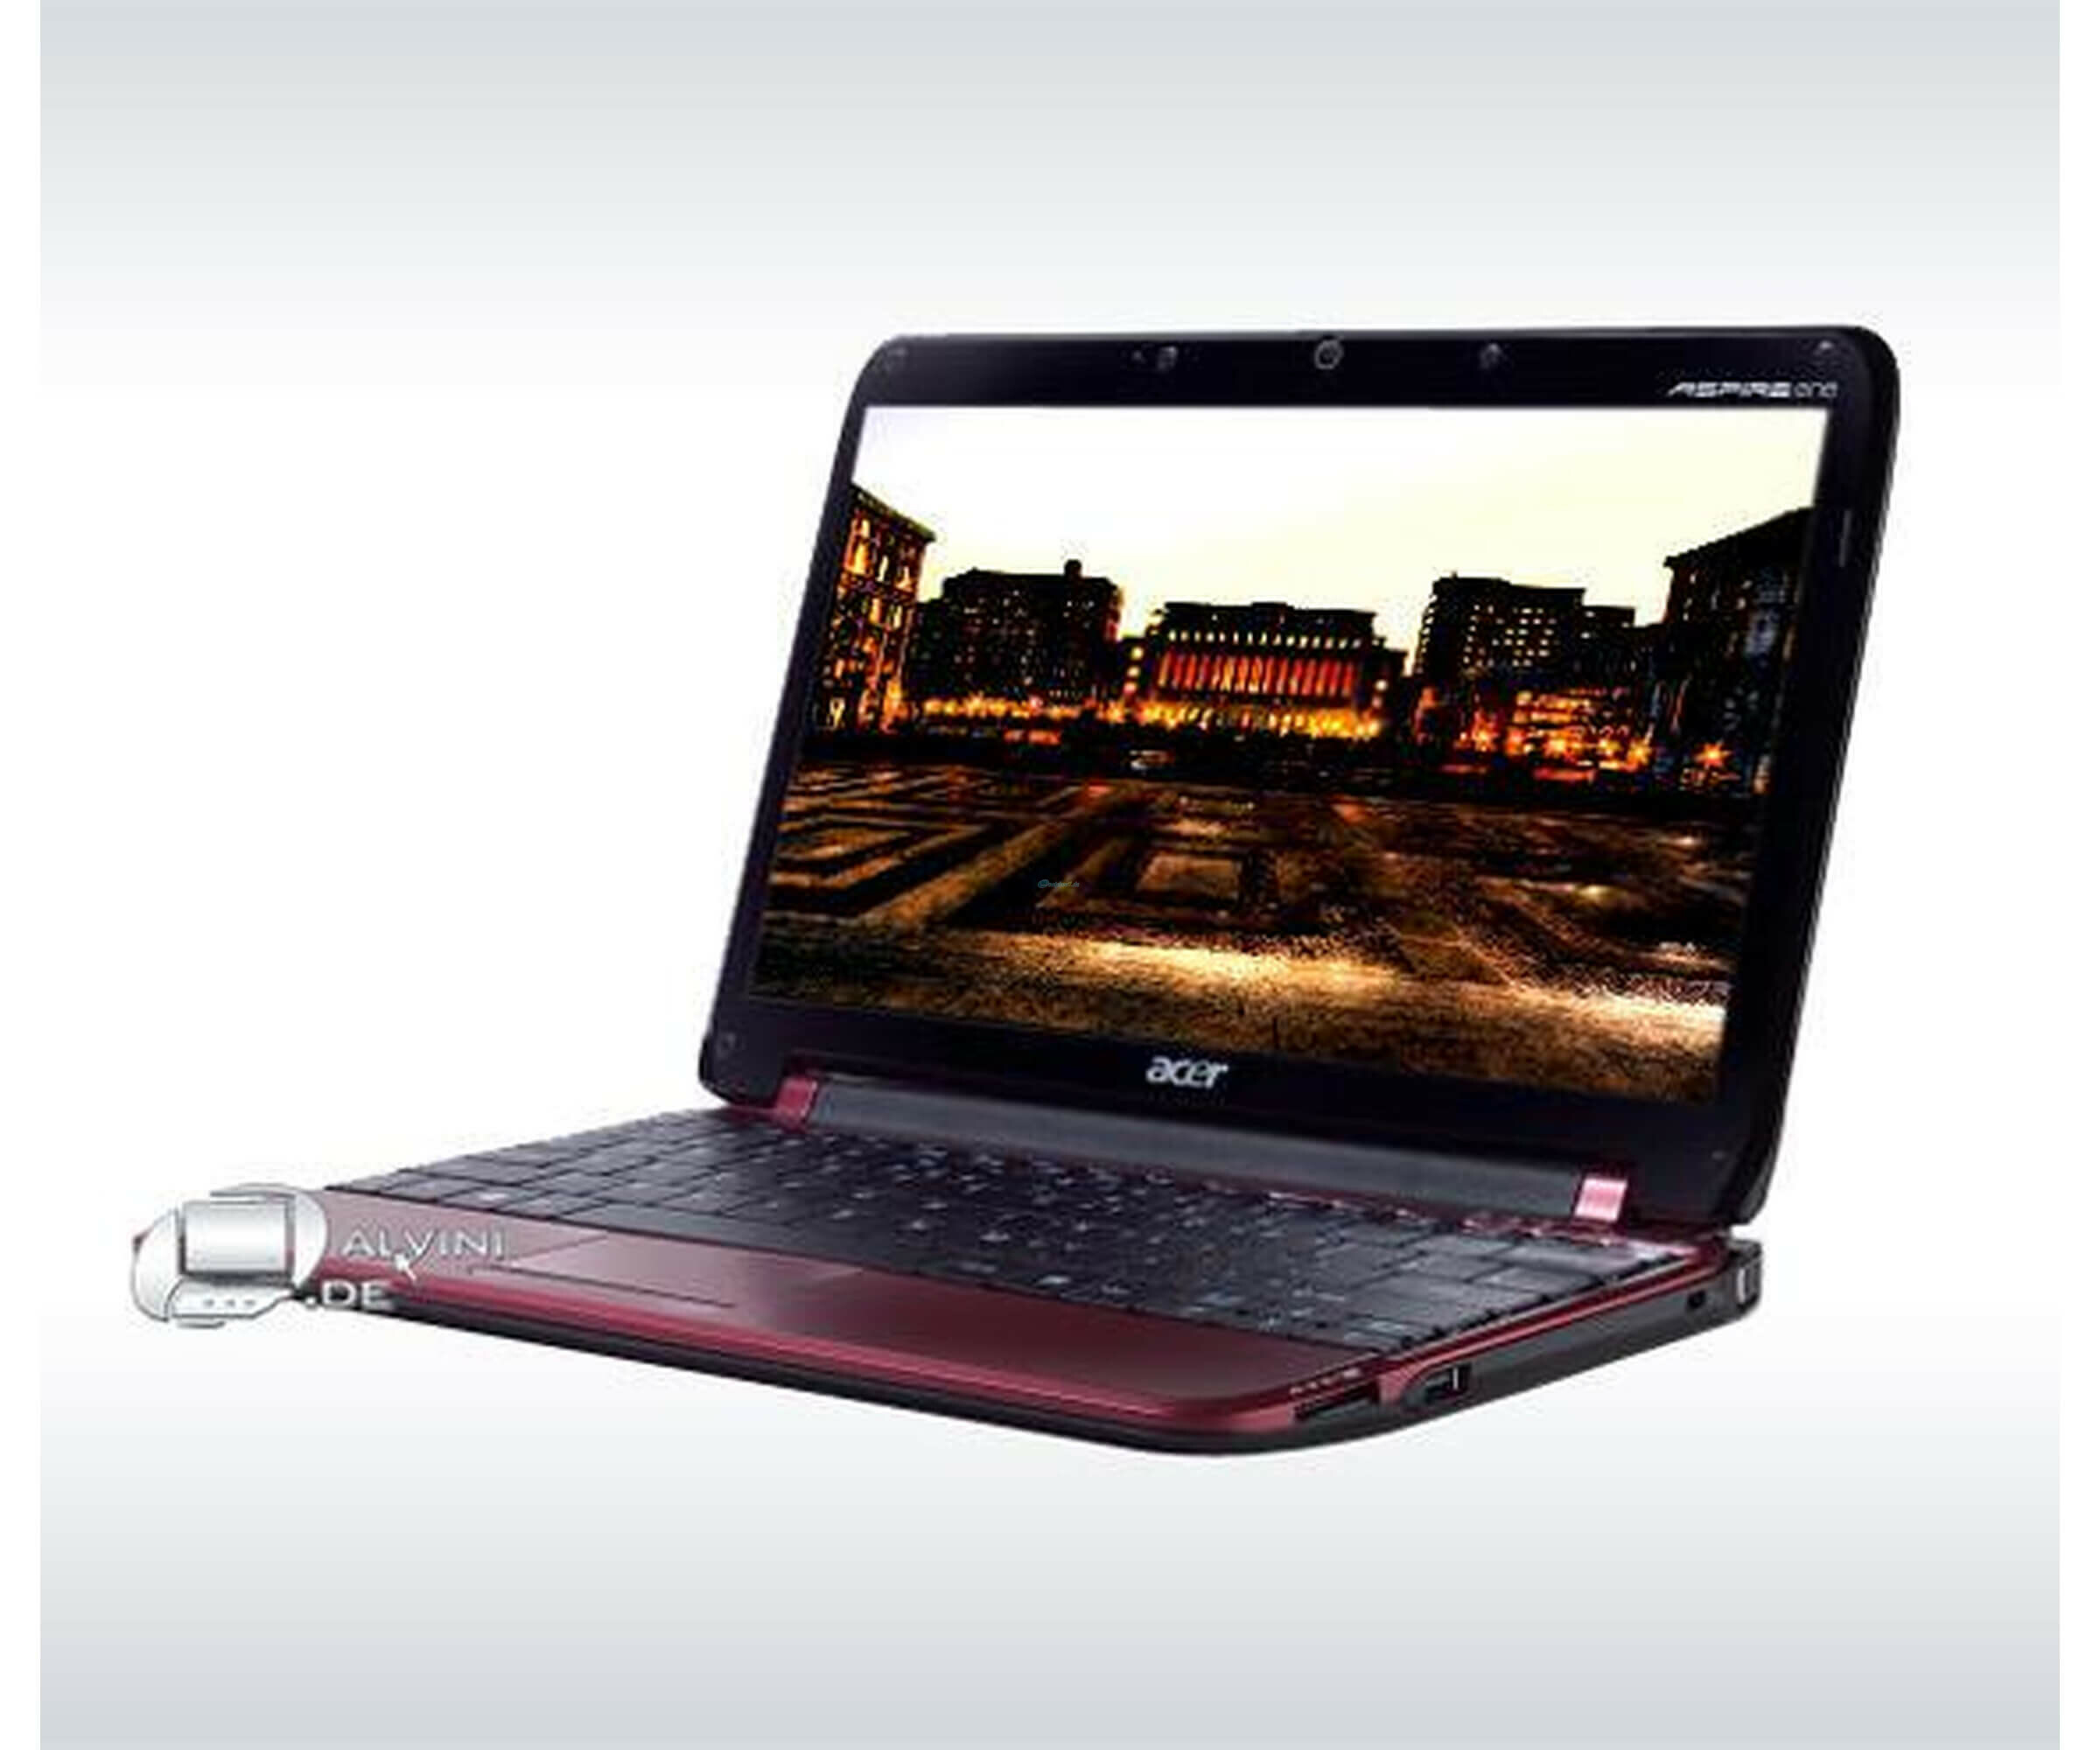 Acer Aspire One D255 25,6cm 10,1 Atom N450 1GB 250GB Rot